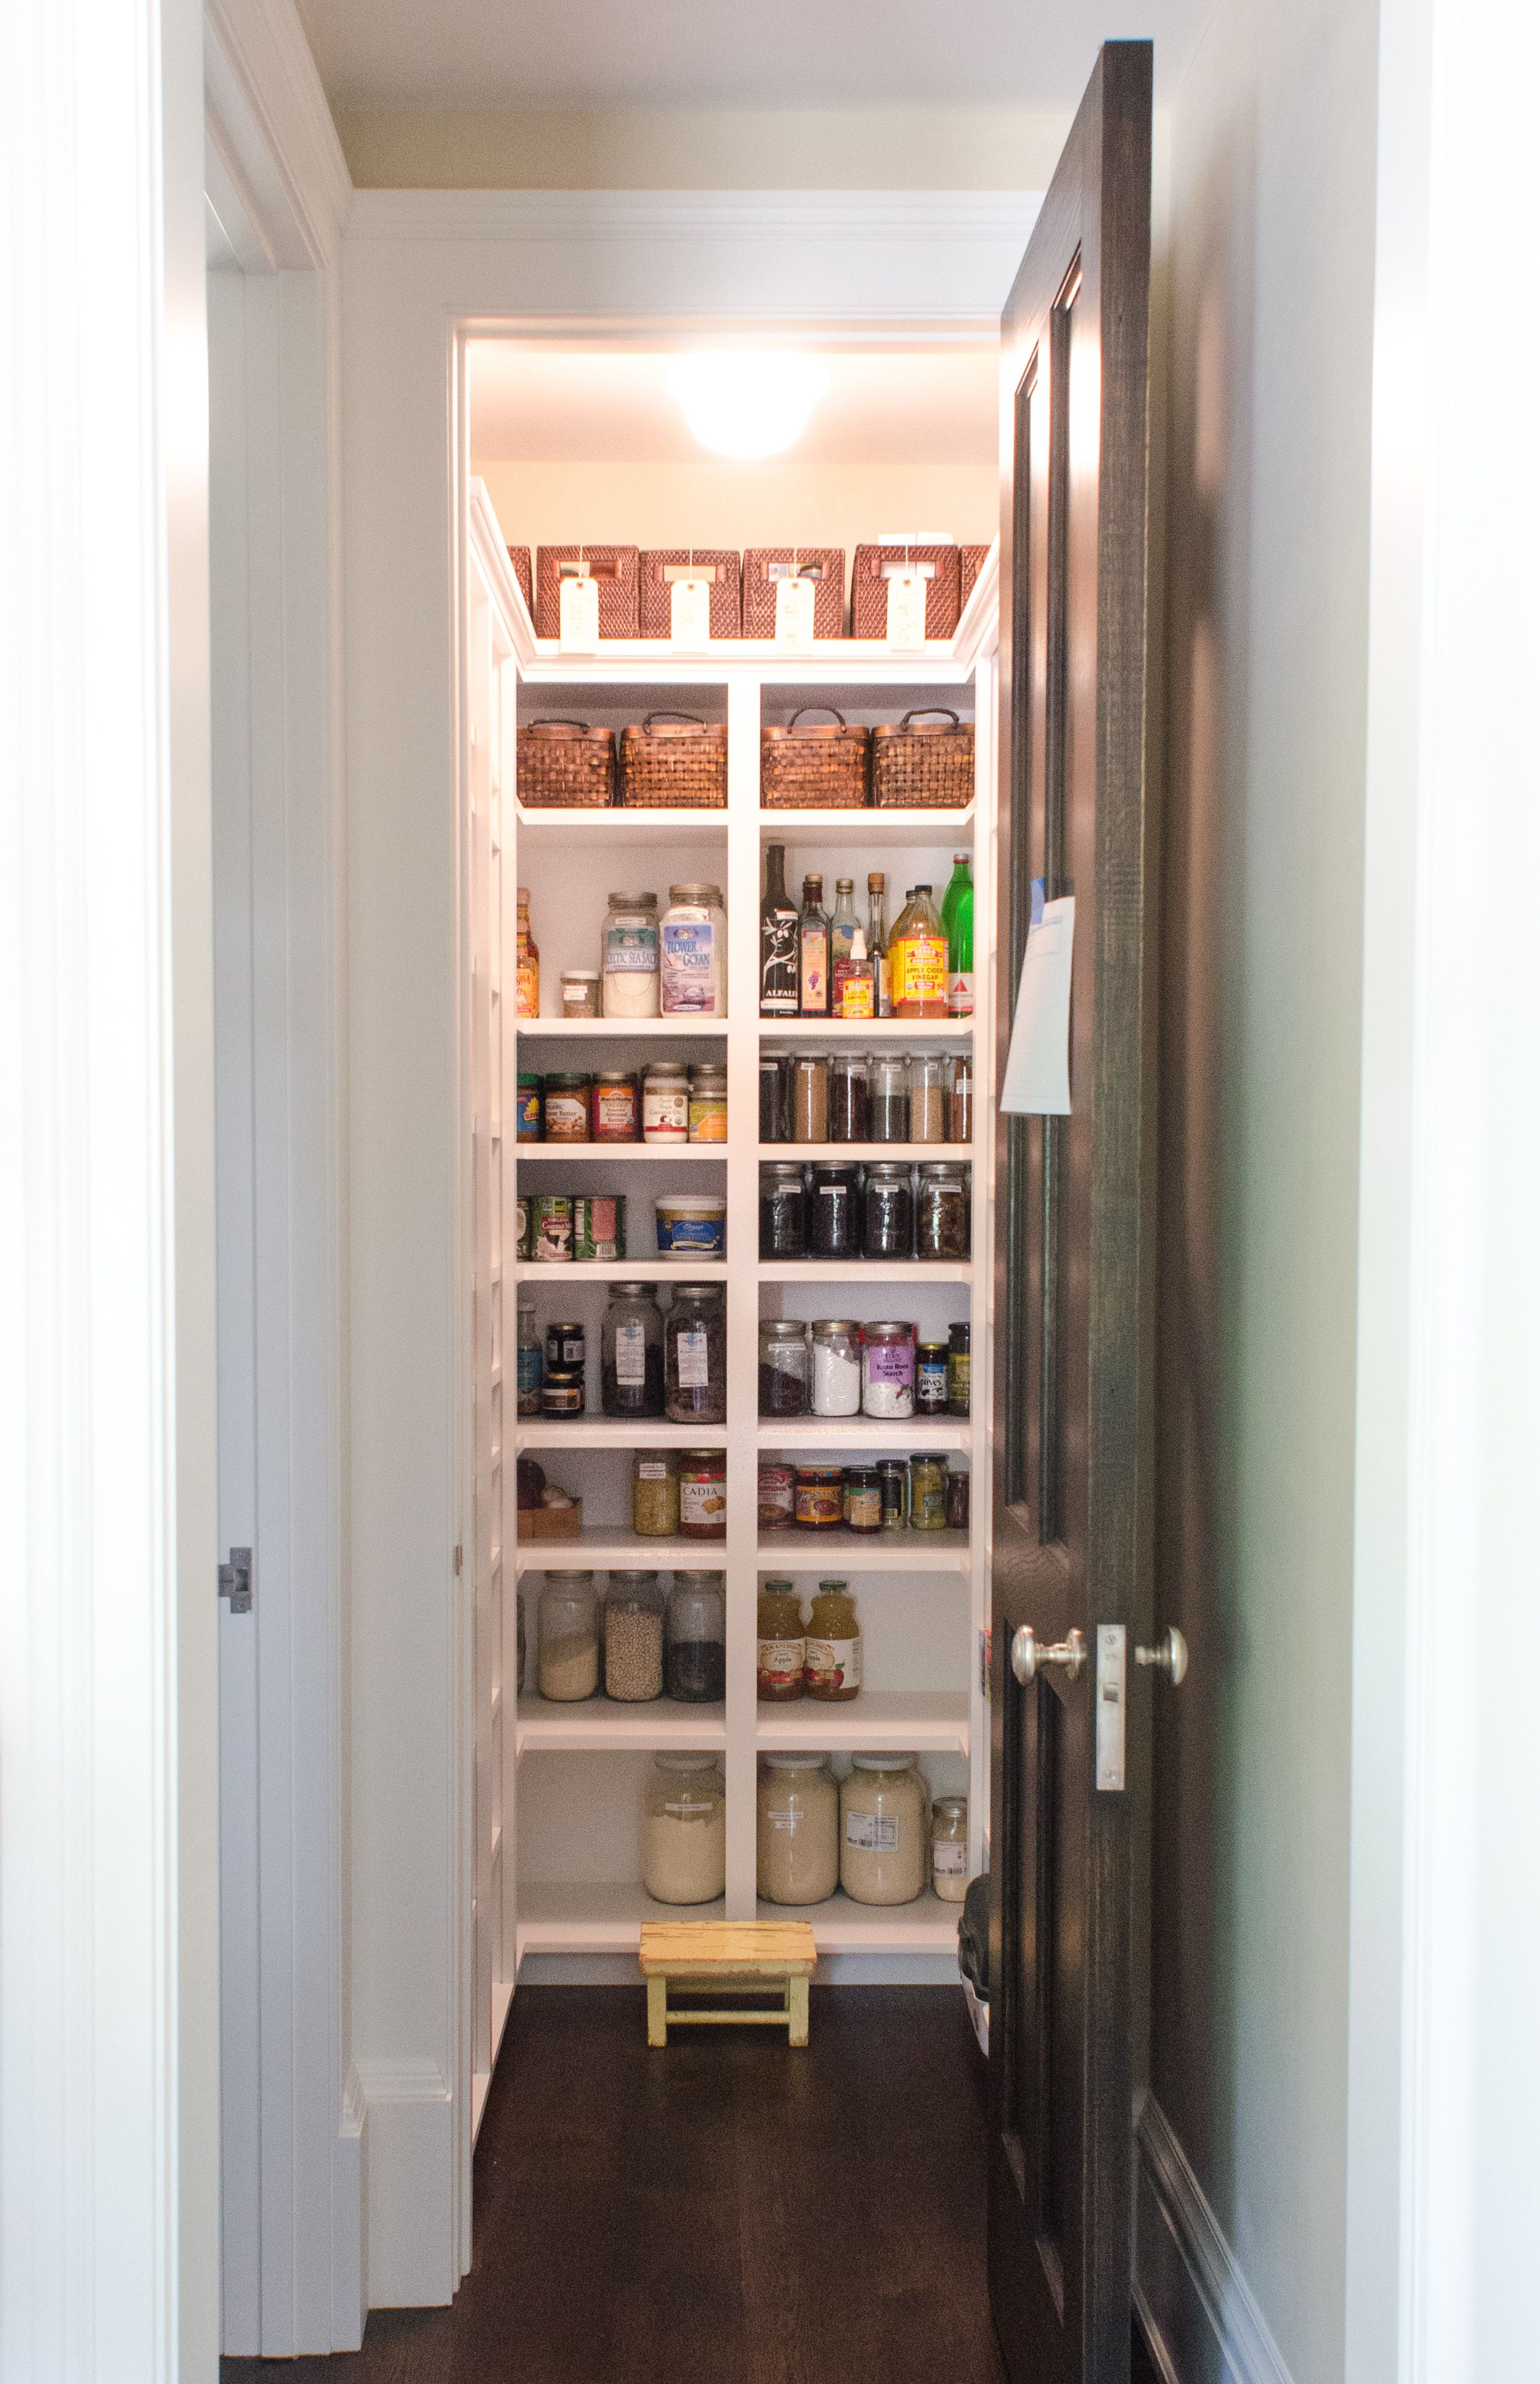 5 Strategies For Organizing Your Pantry (And Keeping It That